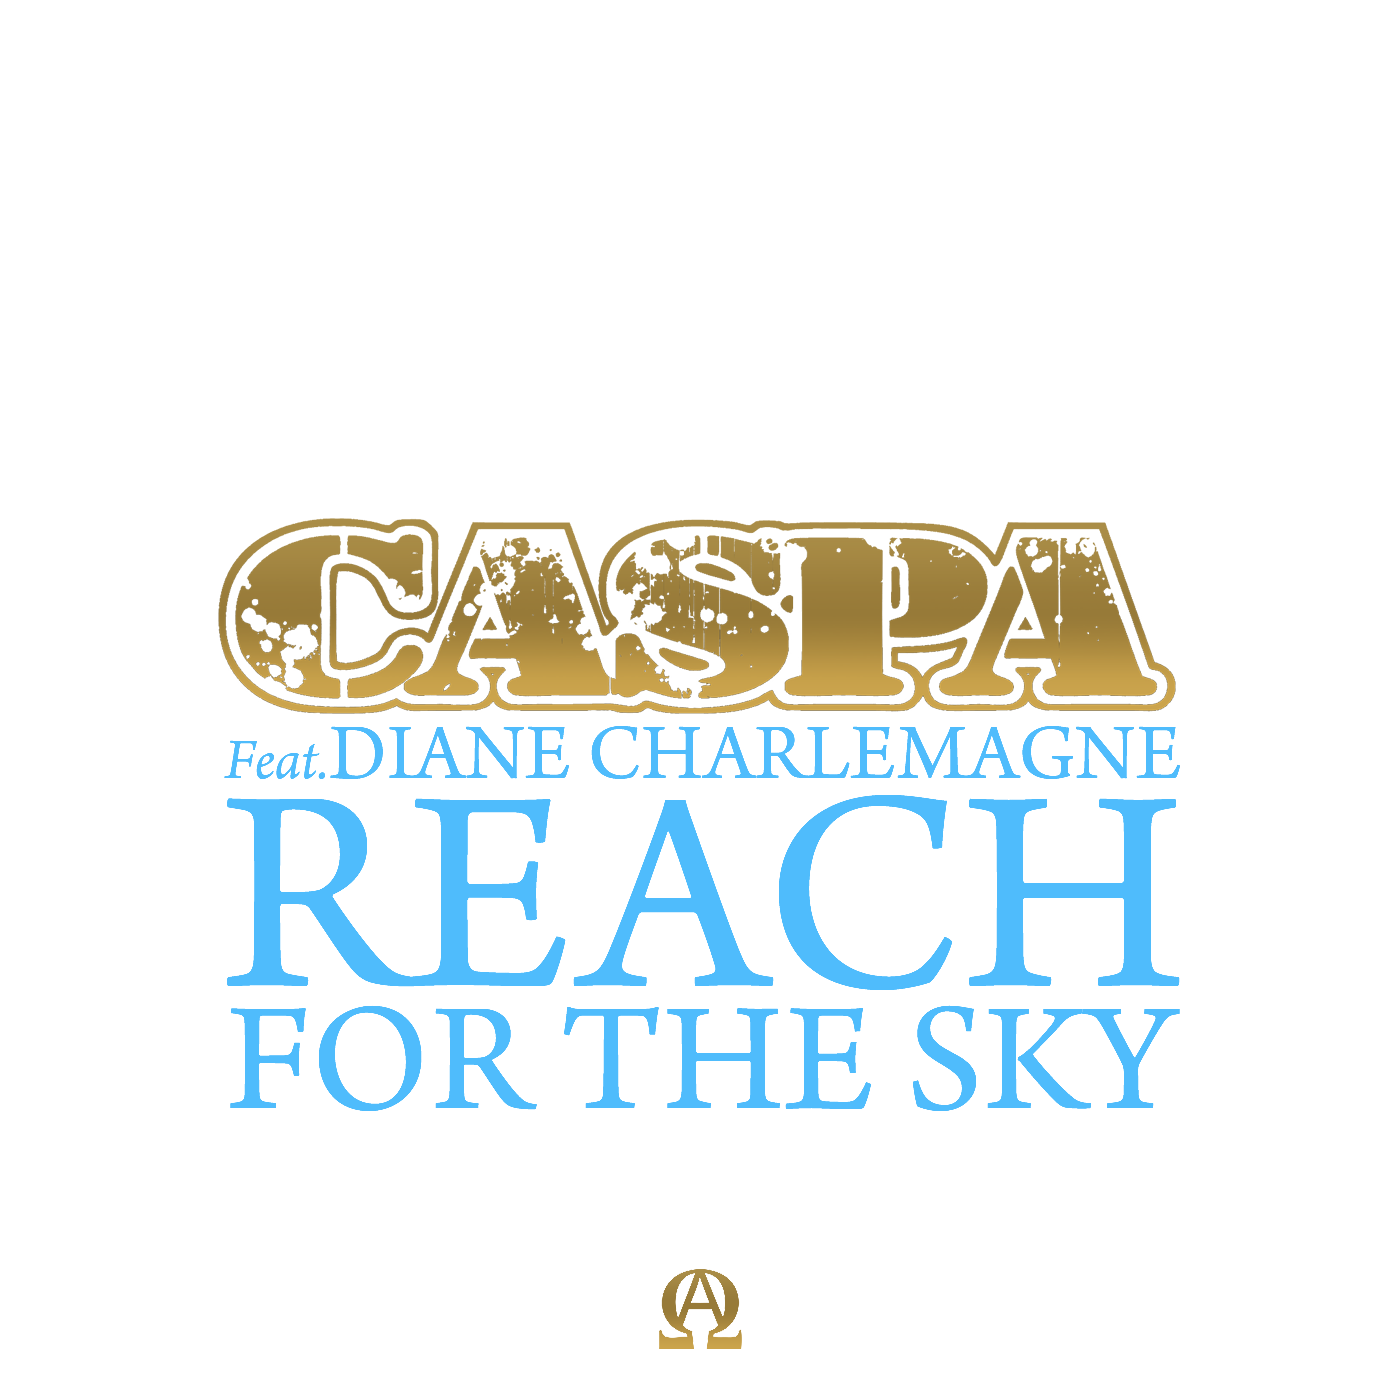 DP090: REACH FOR THE SKY FEAT. DIANE CHARLEMAGNE